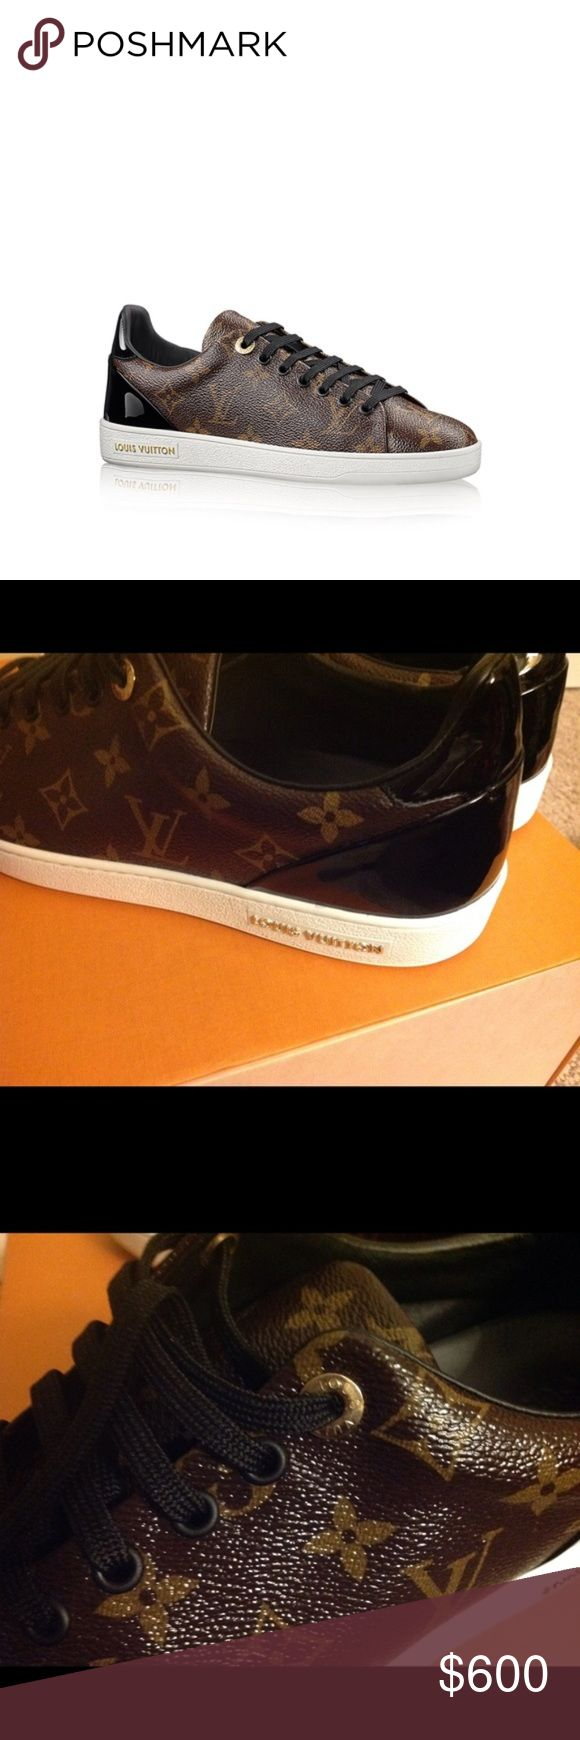 Louis Vuitton Sneakers Authentic.  Excellent Used Condition.  Worn once for few hours.  These are UK 41 and fit true to size.  Comes with dustbag and box.  Price is firm unless I send a private offer. Louis Vuitton Shoes Sneakers